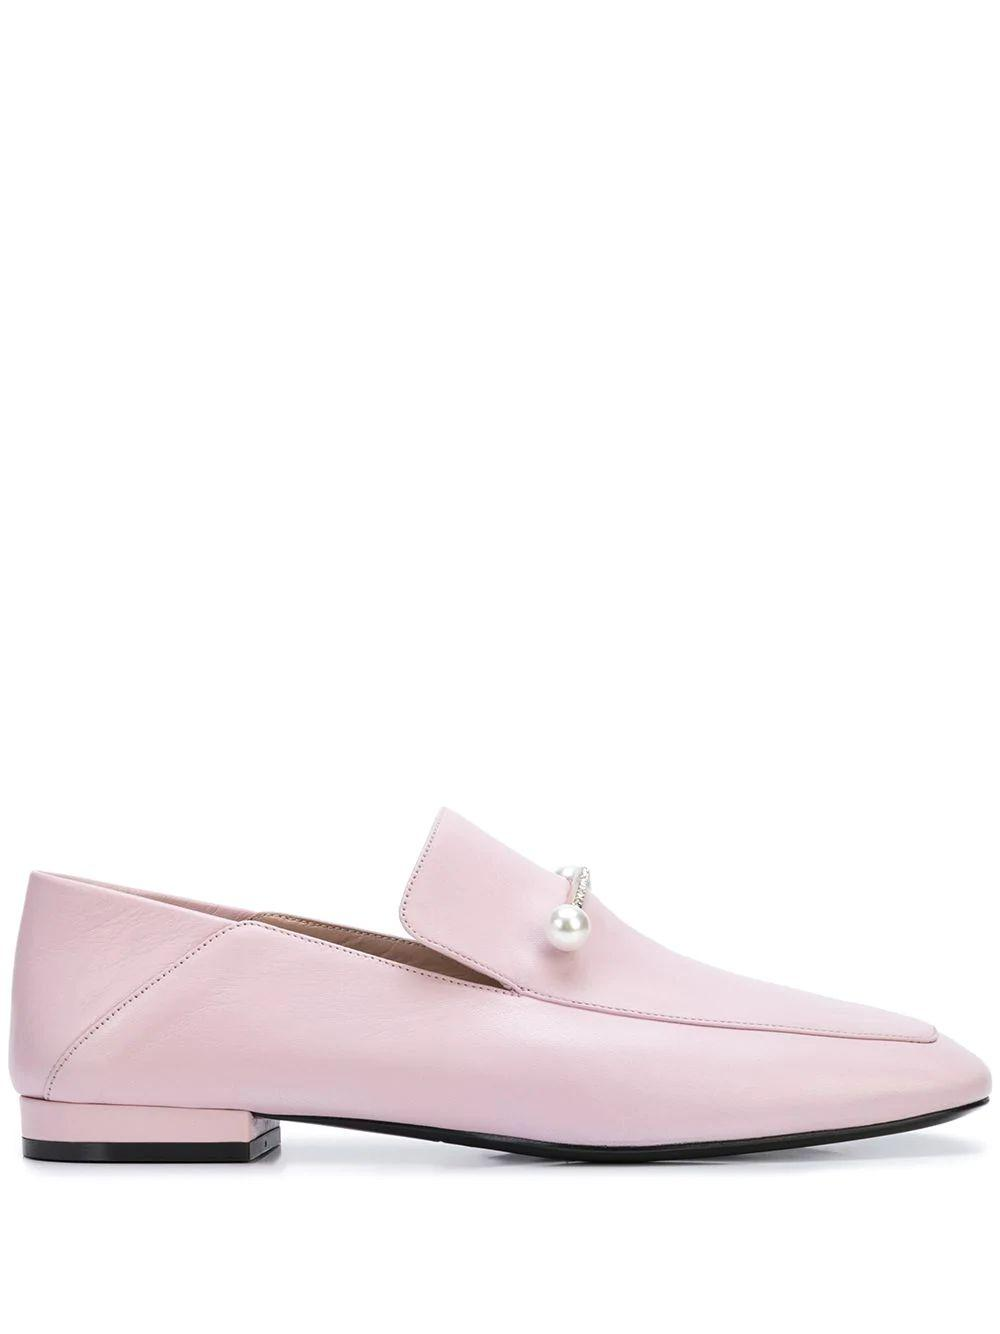 Loafer With Fold Down Heel Item # CL20E2134-0036